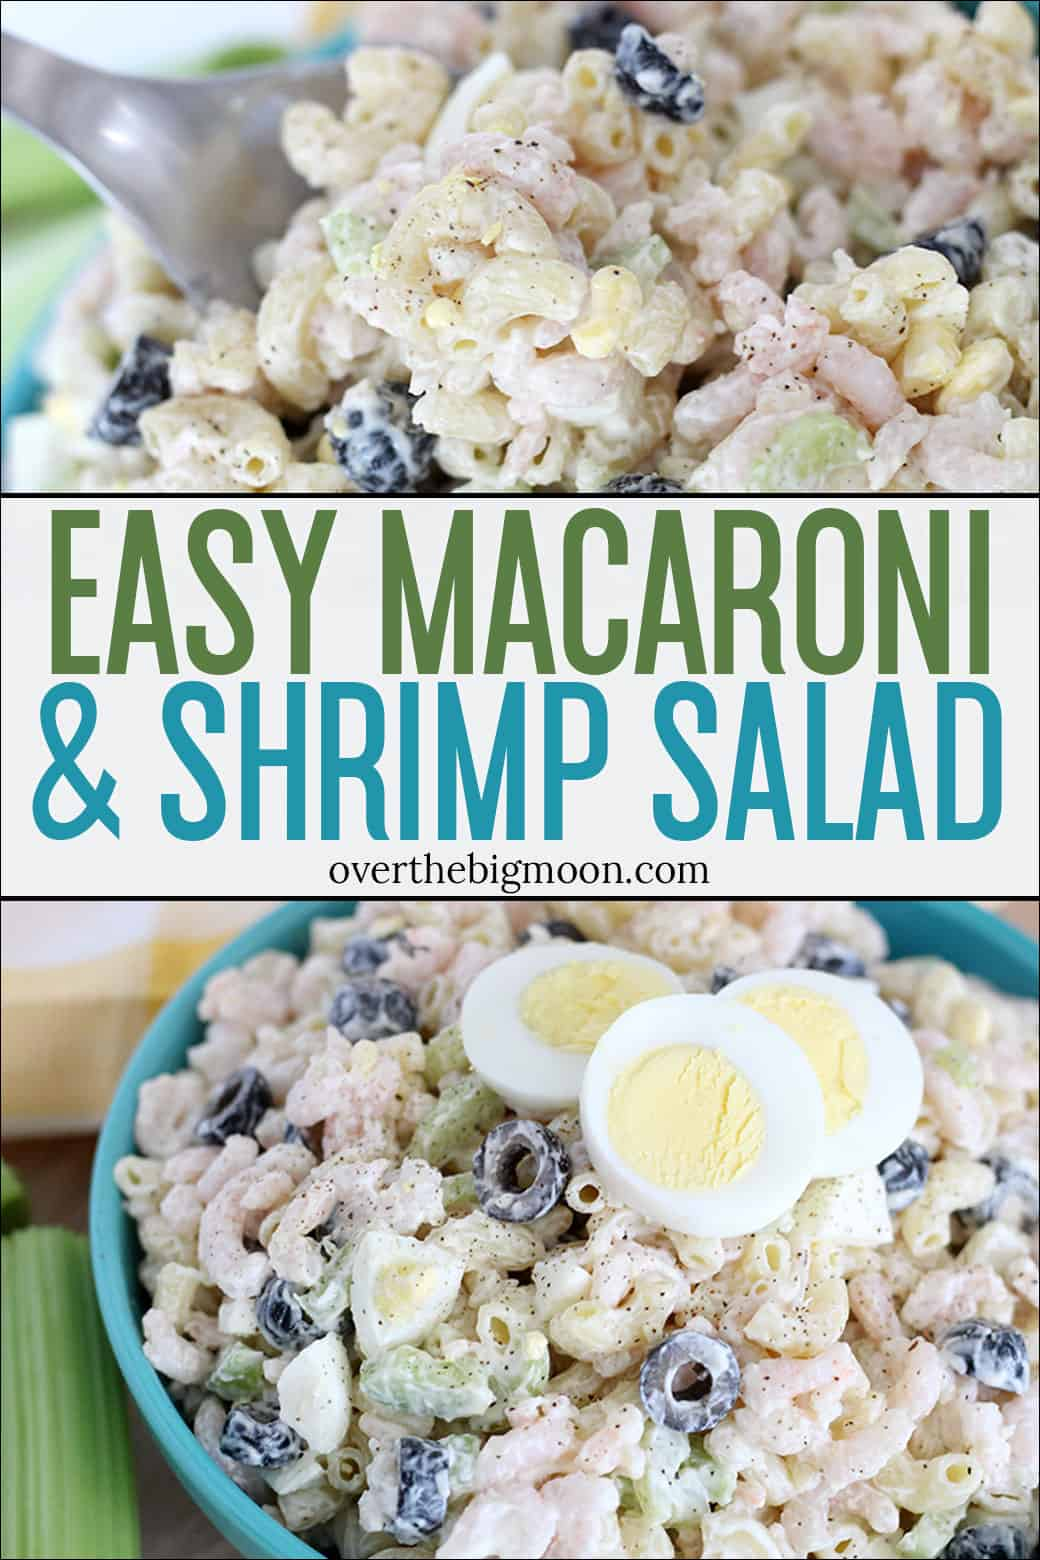 A fun take on a classic macaroni salad! This Easy Macaroni and Shrimp Salad is perfect to serve with any dinner and makes the perfect potluck salad! From overthebigmoon.com!